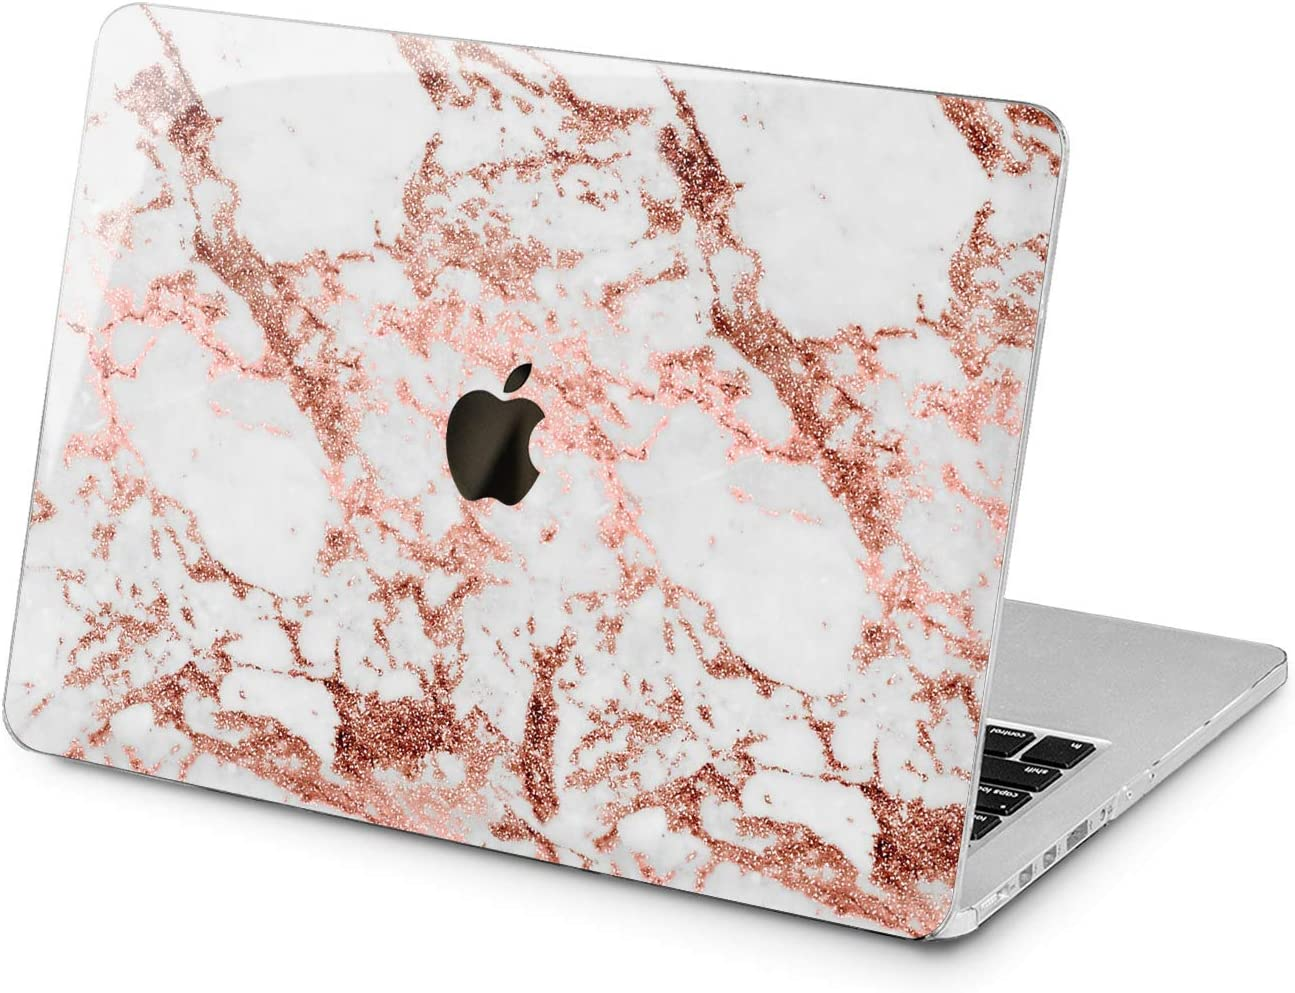 """Cavka Hard Shell Case for Apple MacBook Pro 13"""" 2019 15"""" 2018 Air 13"""" 2020 Retina 2015 Mac 11"""" Mac 12"""" Protective Bronze Marble Glam Print Stone Plastic Laptop Design Abstract Cover Pattern Stylish"""